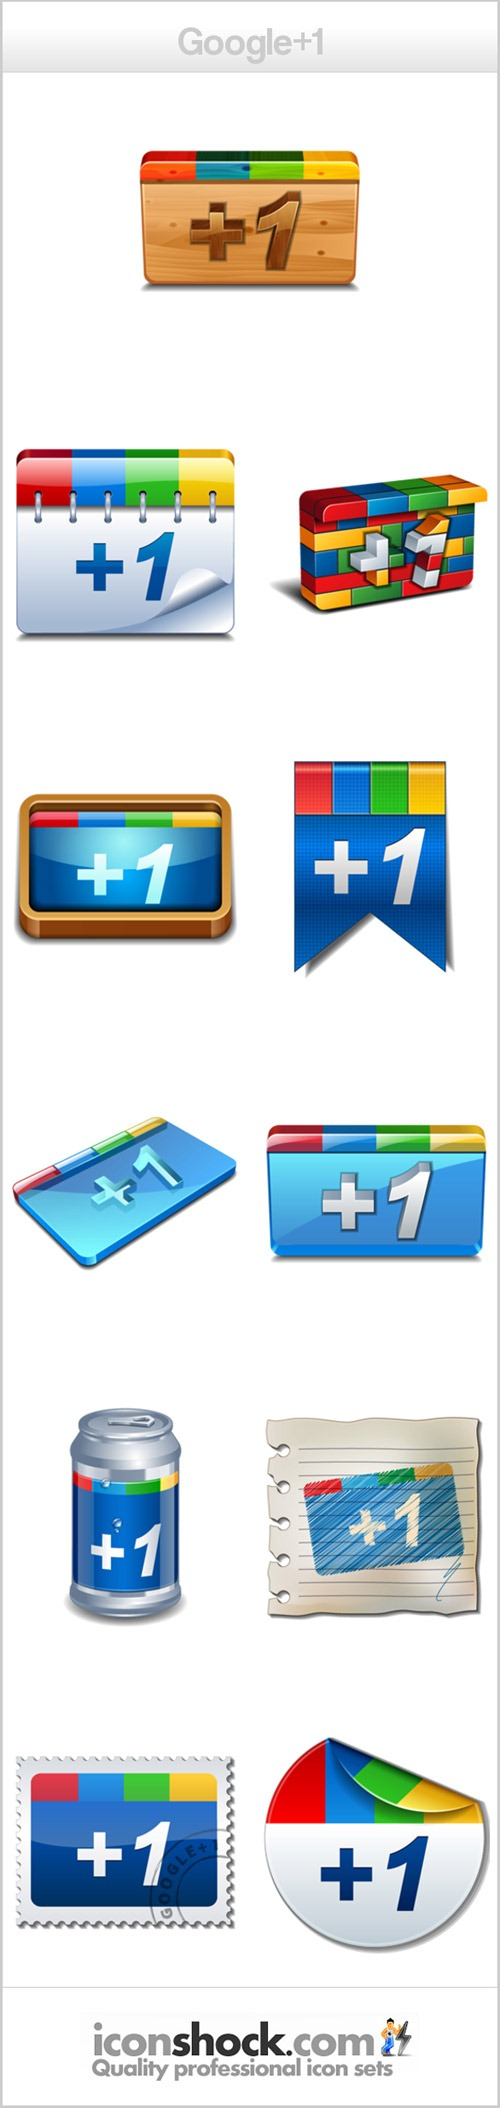 google-plus-icons-11